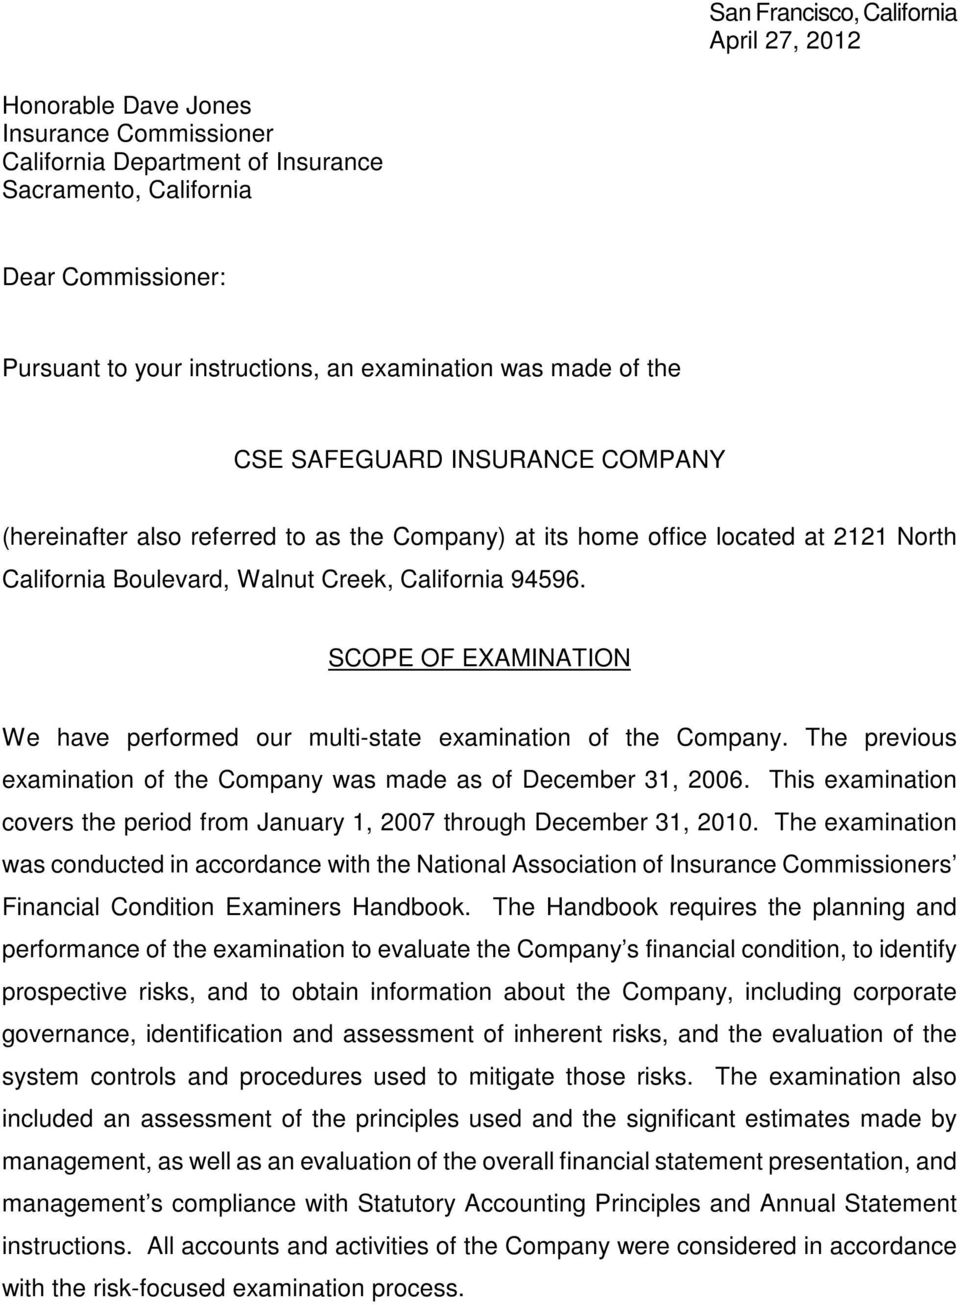 SCOPE OF EXAMINATION We have performed our multi-state examination of the Company. The previous examination of the Company was made as of December 31, 2006.